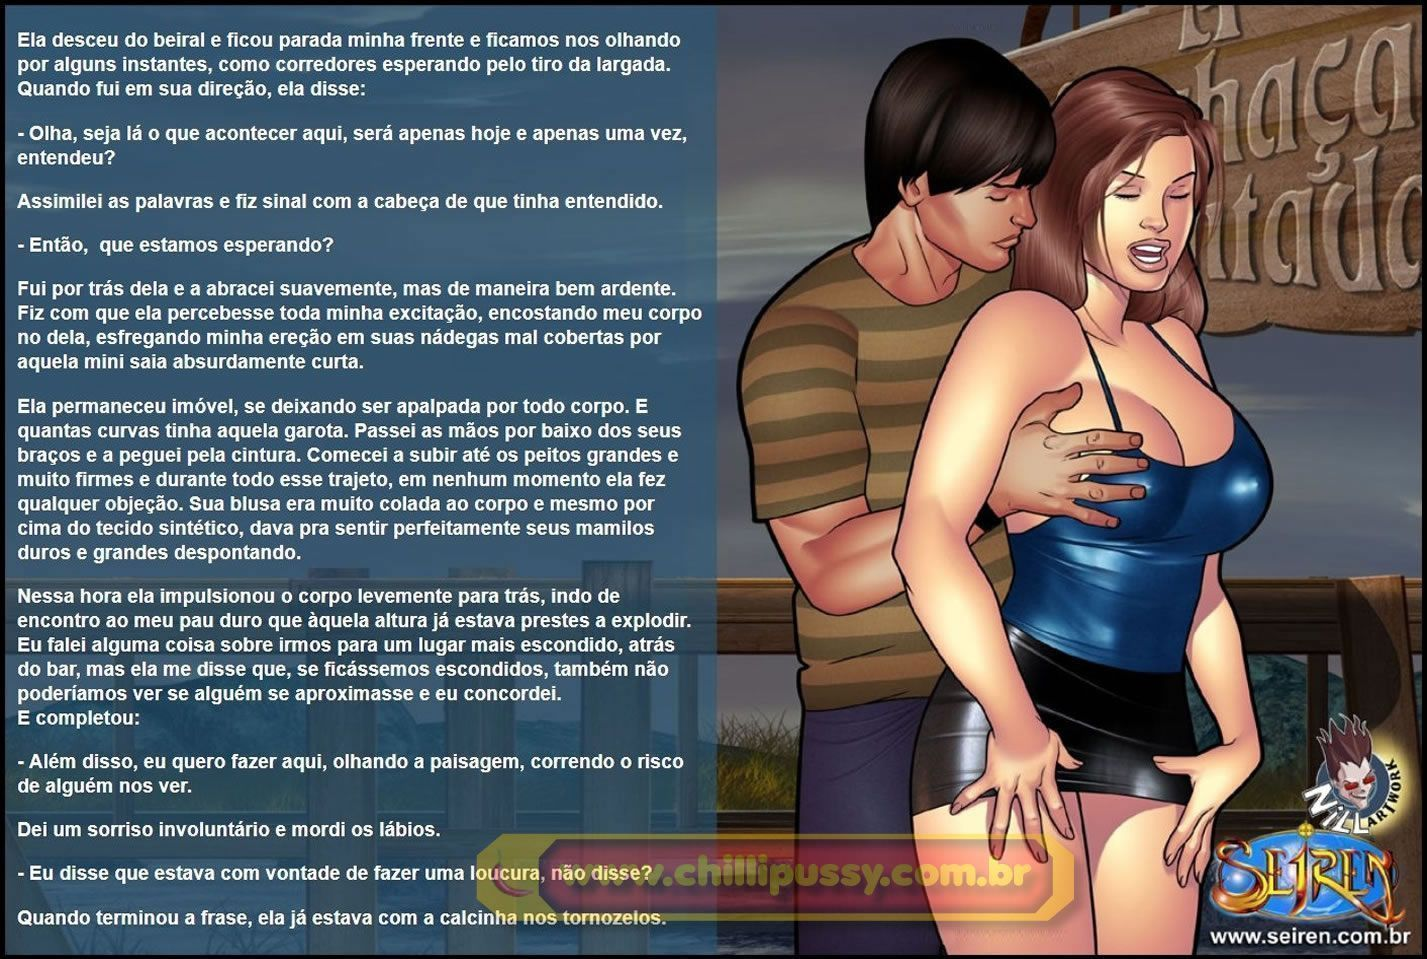 casualidade-chilli-pussy-06